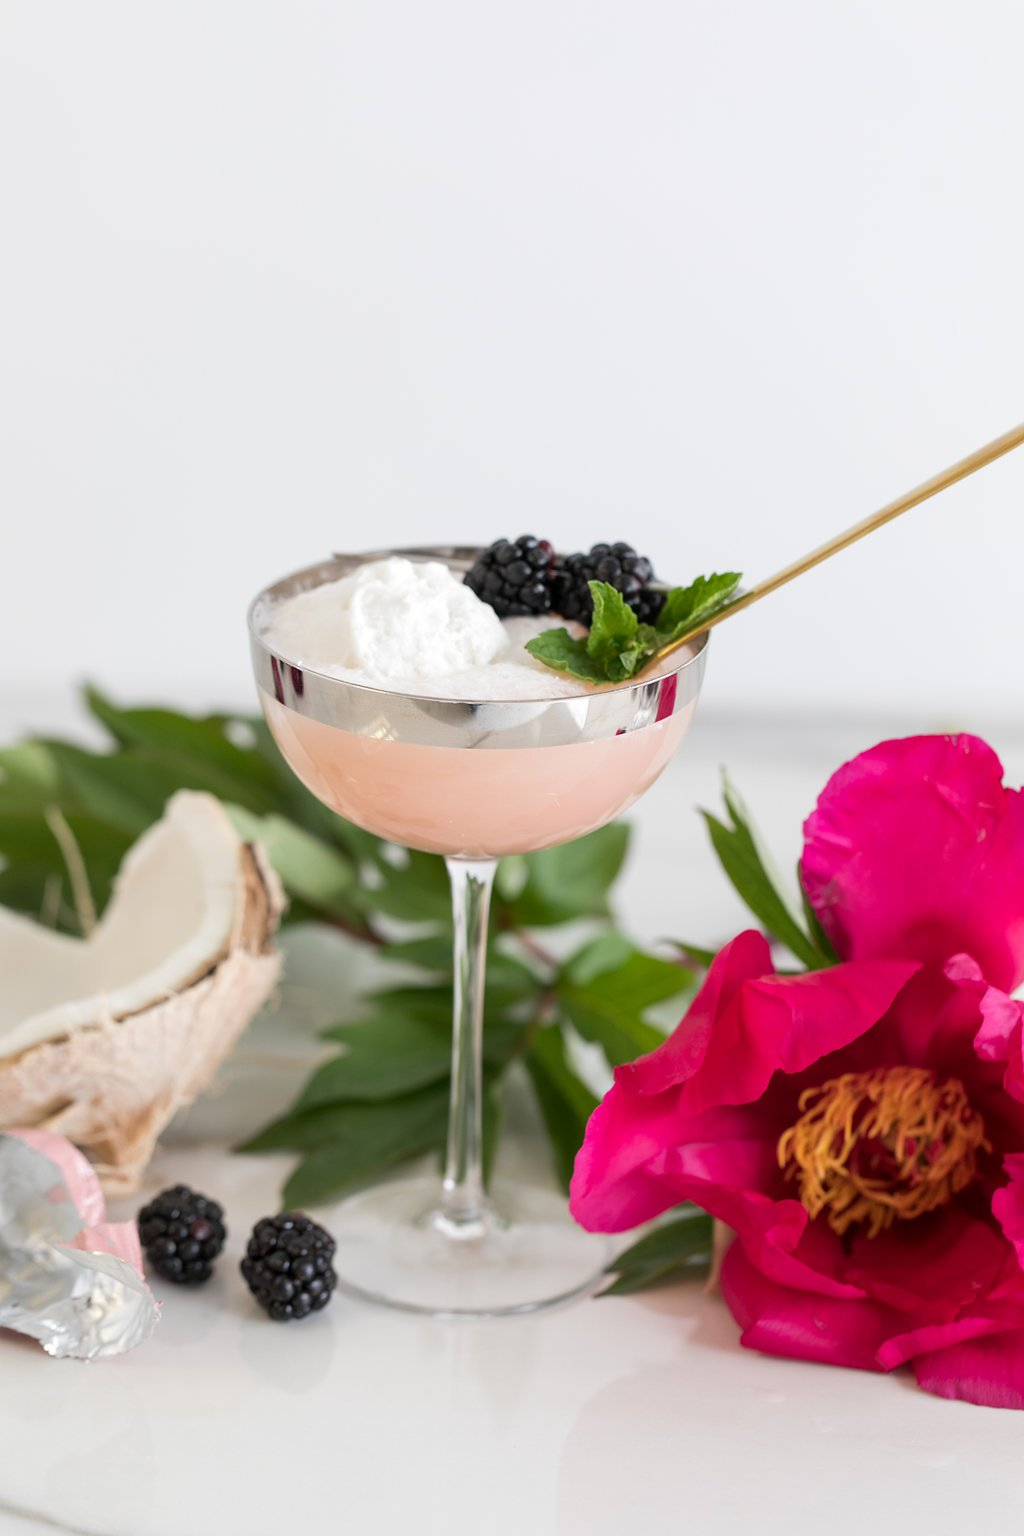 Coconut sorbet float in coupe glass with golden spoon next to pink peony and coconut shell